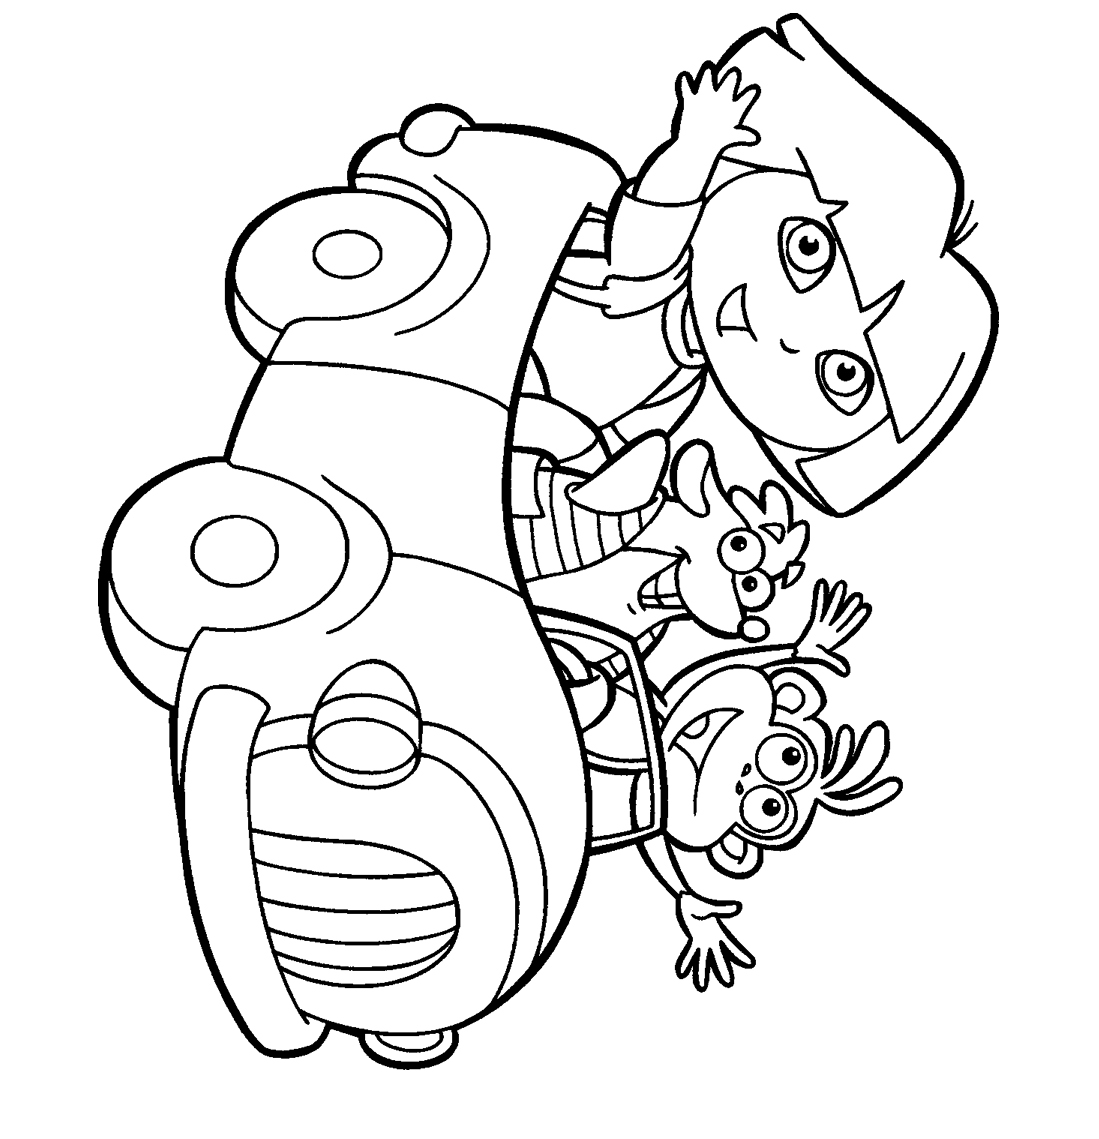 Printable Coloring Pages For Kids Coloring Pages For Kids Free Colouring Books For Children